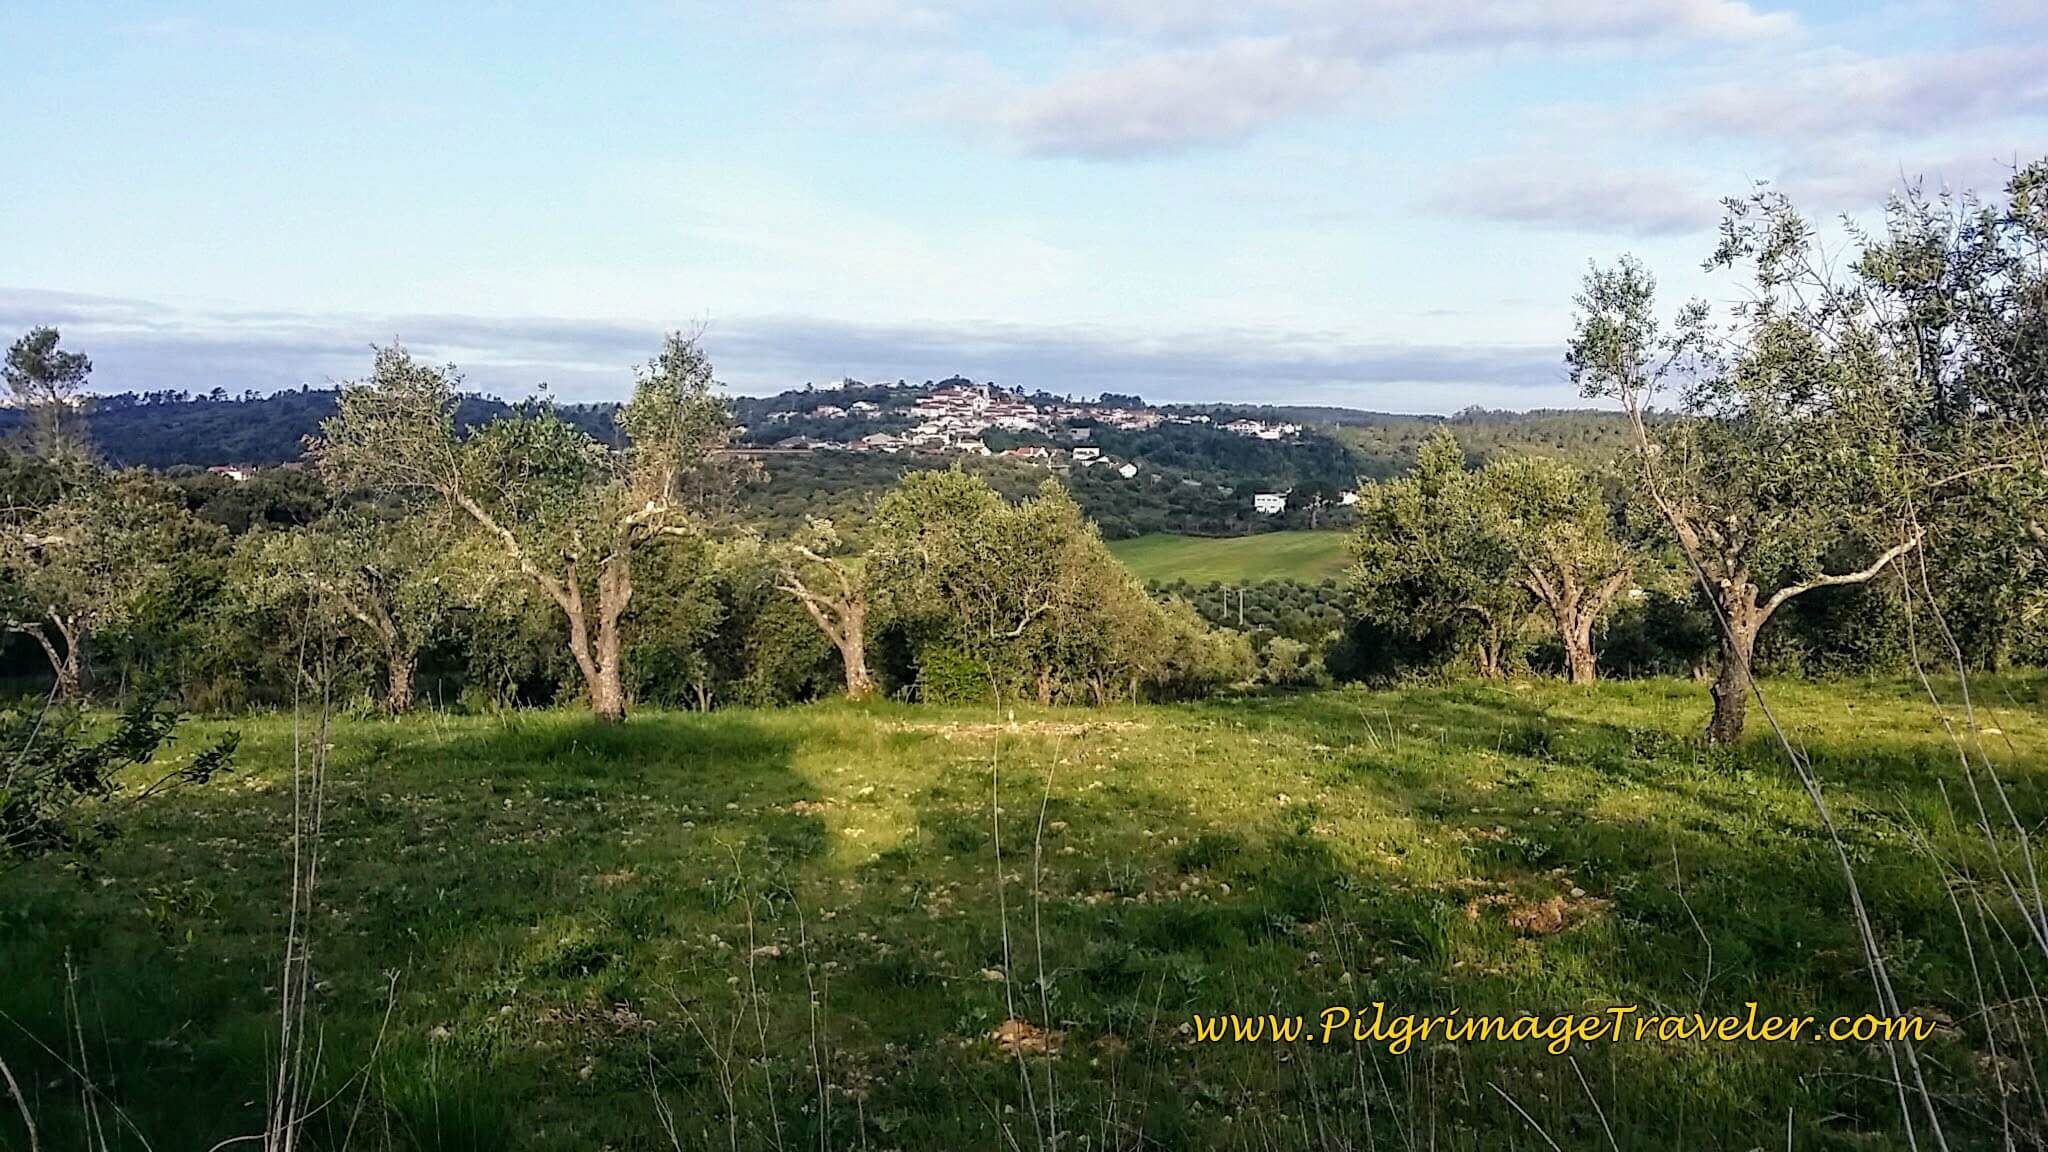 Olive groves and a view of the Portuguese countryside